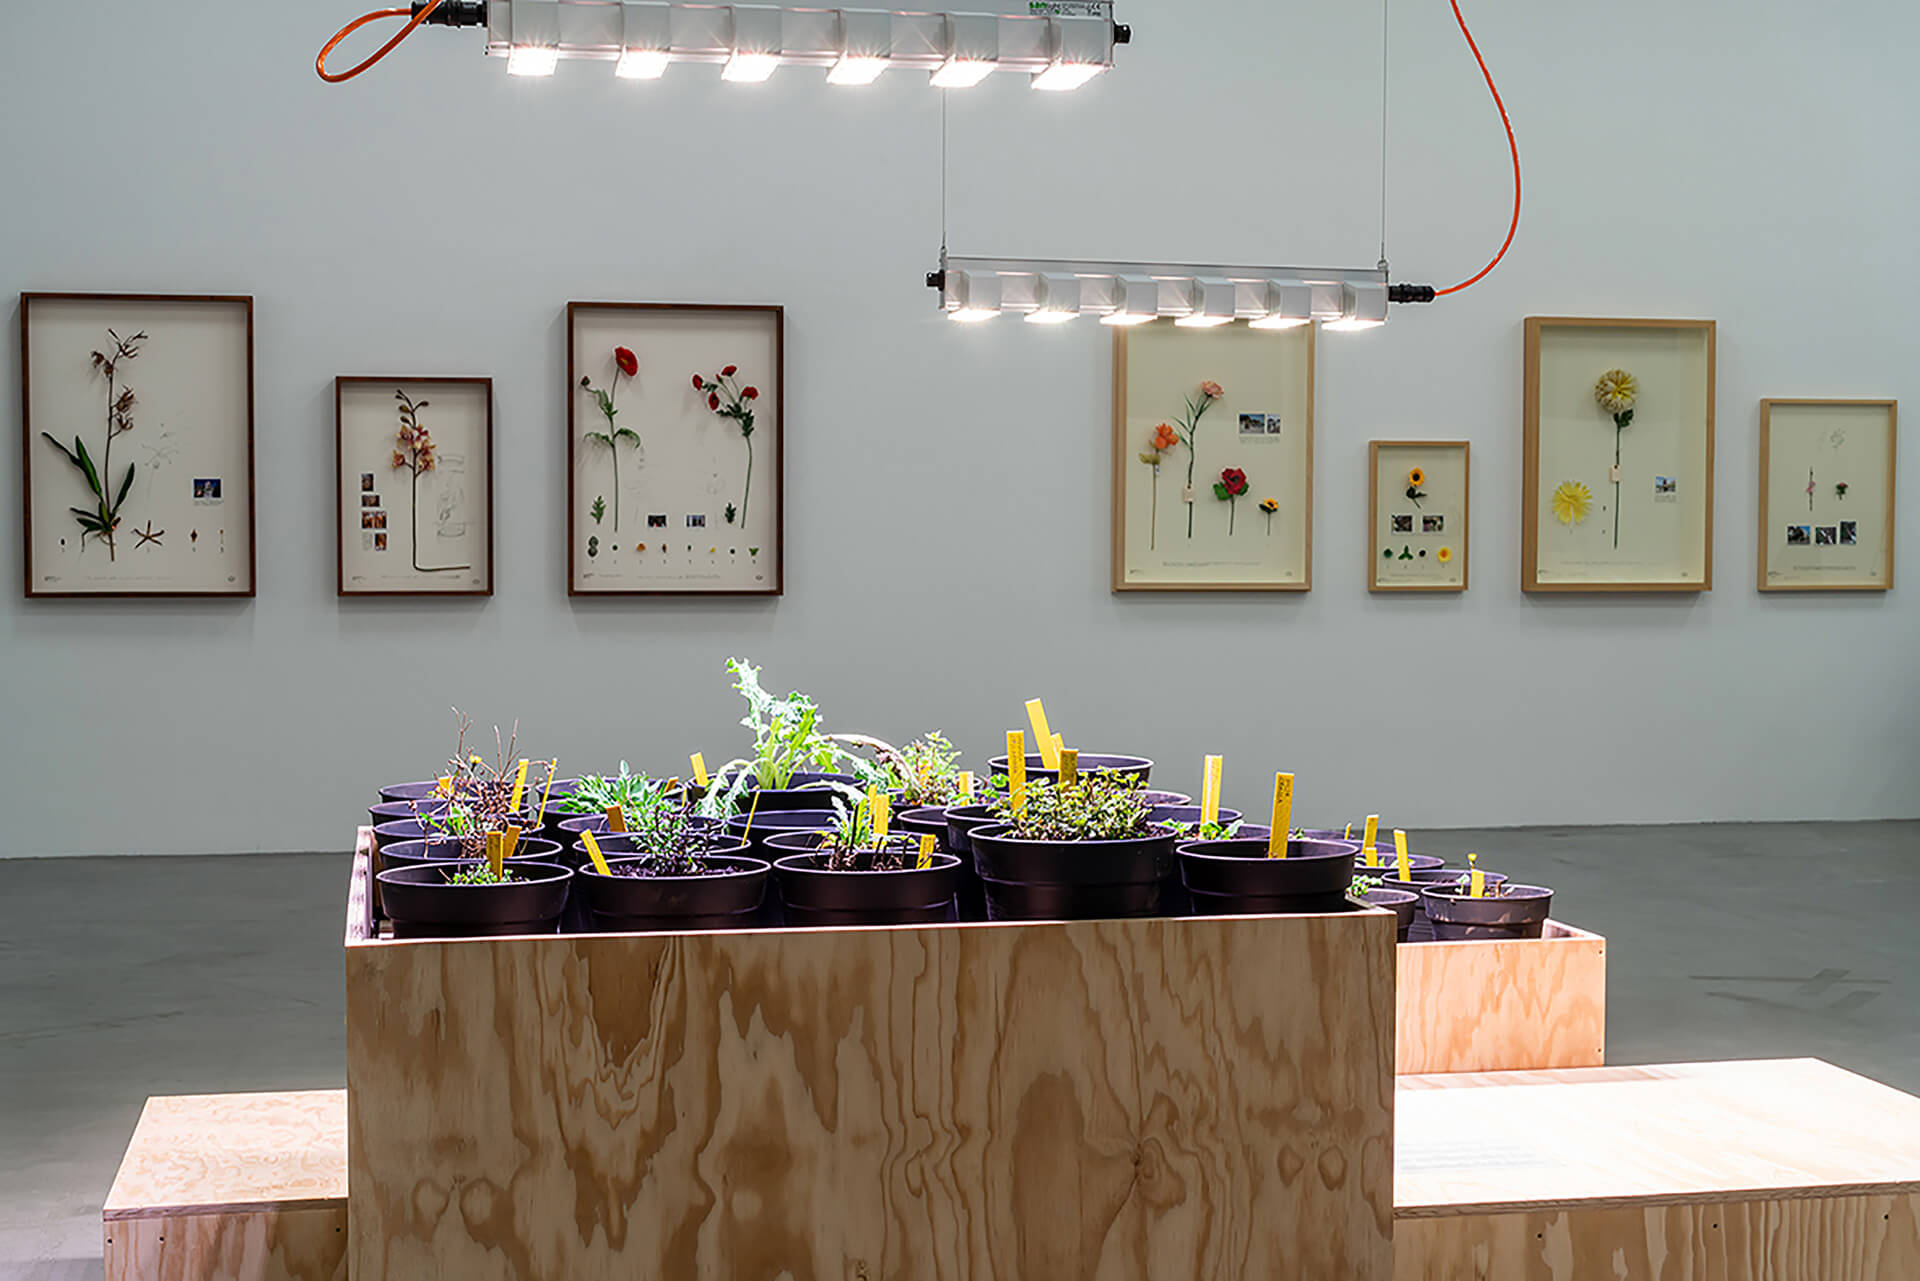 Maria Thereza Alves' Seeds of Change: New York – A Botany of Colonisation (2017) in front of Alberto Baraya's Berlin Expedition and Sicily Expedition, Herbario de Plantas Artificiales (Herbarium of Artificial Plants) (2014-2018) at Migros Museum für Gegenwartskunst| Potential Worlds 1: Planetary Memories | Maria Thereza Alves, Alberto Baraya | STIRworld